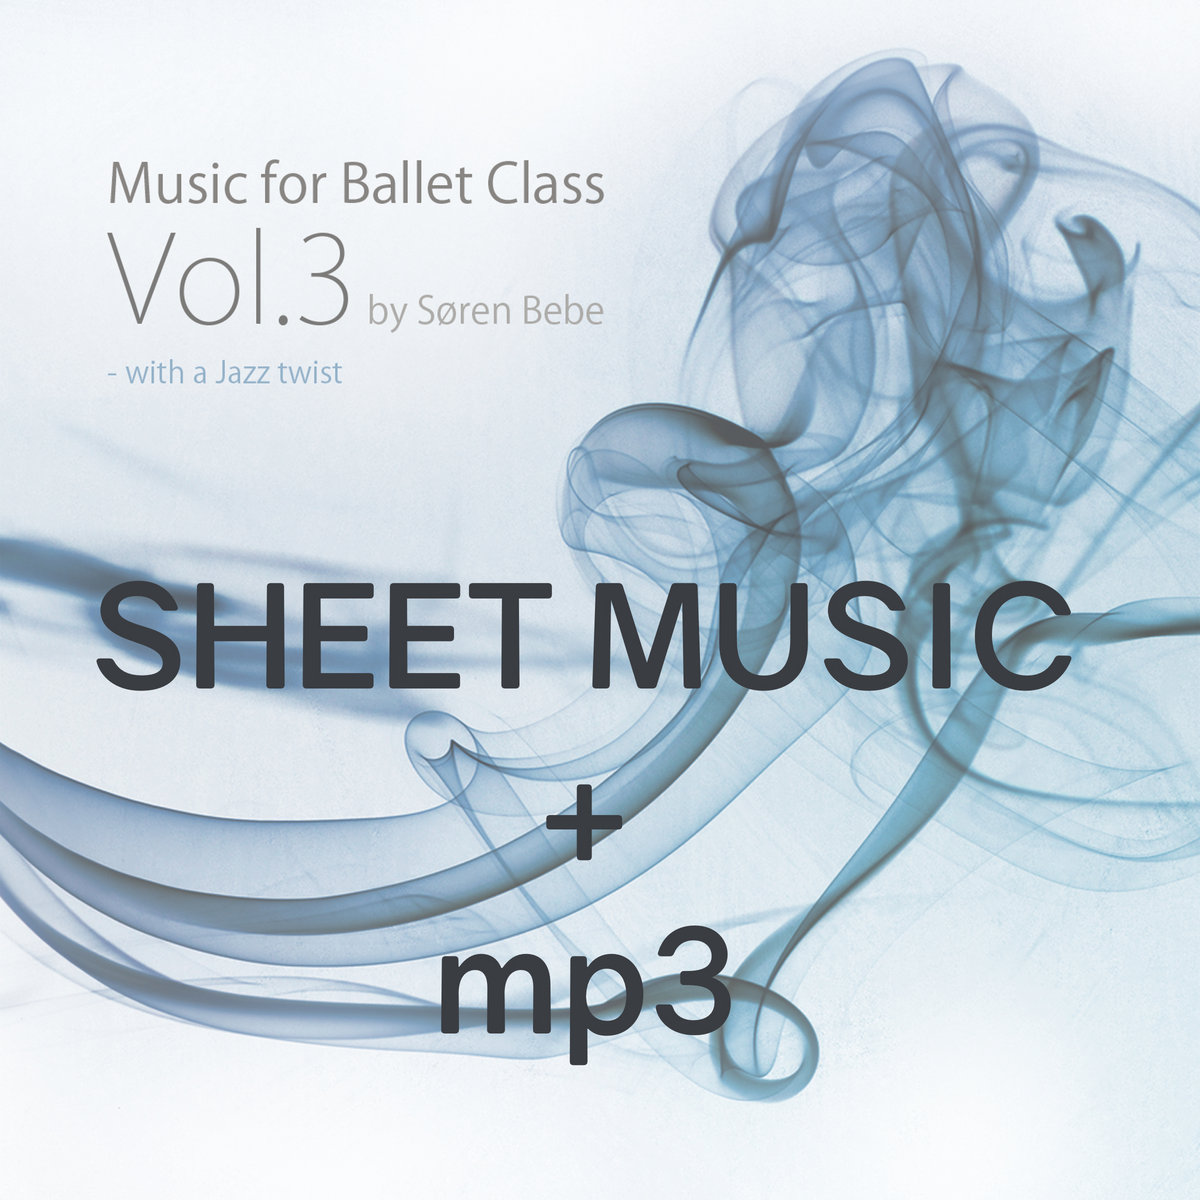 Sheet Music Mp3 Adagio Barre Track 17 From Music For Ballet Class Vol 3 With A Jazz Twist Søren Bebe